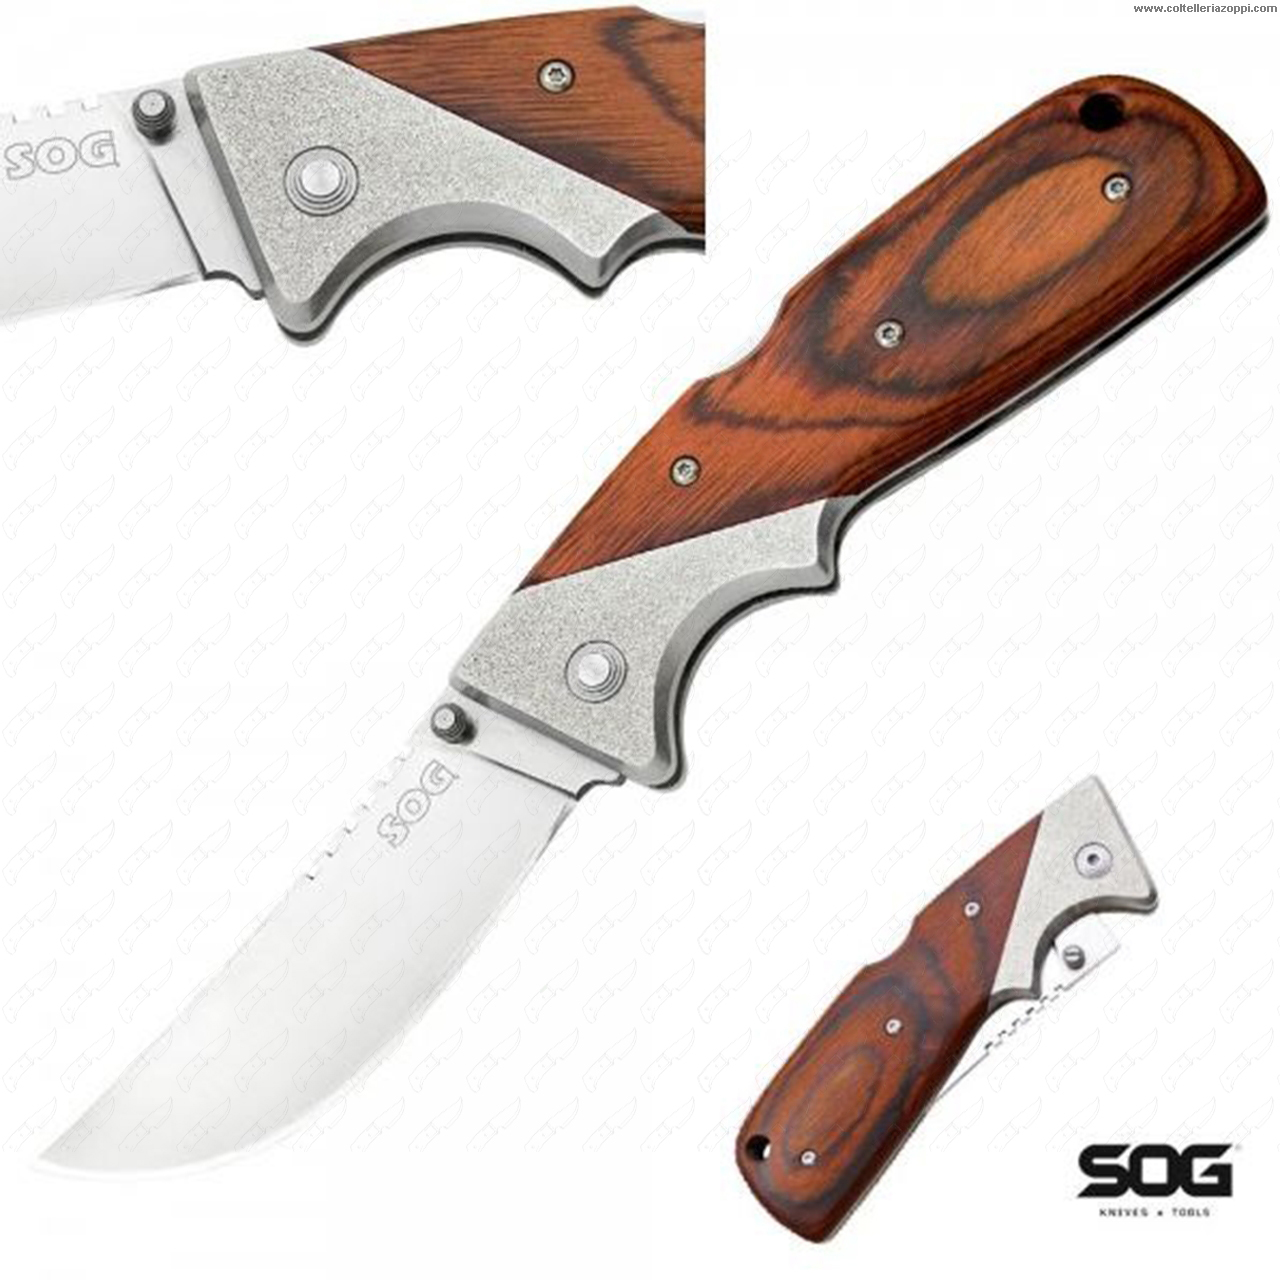 SOG - WOODLINE FOLDER WD-50 -